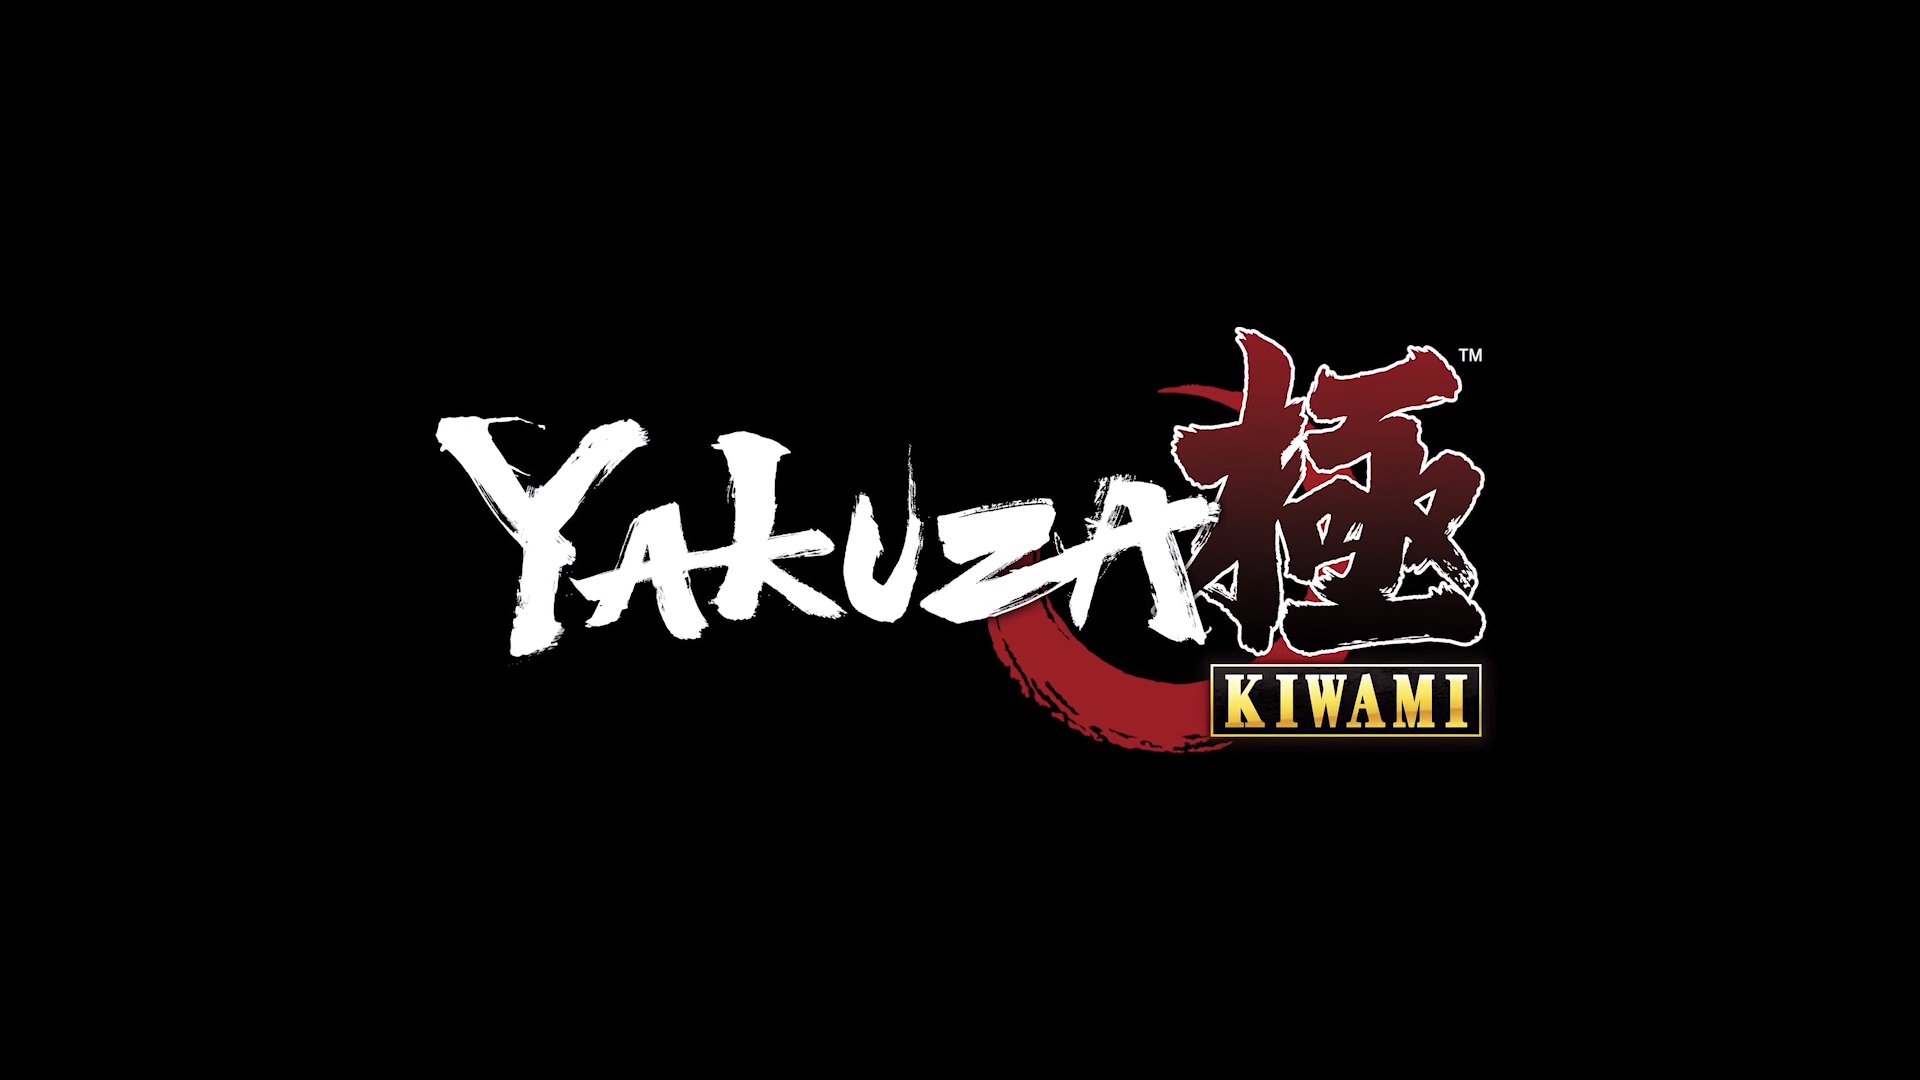 Yakuza Kiwami for PC rumored for February 19th Header Image